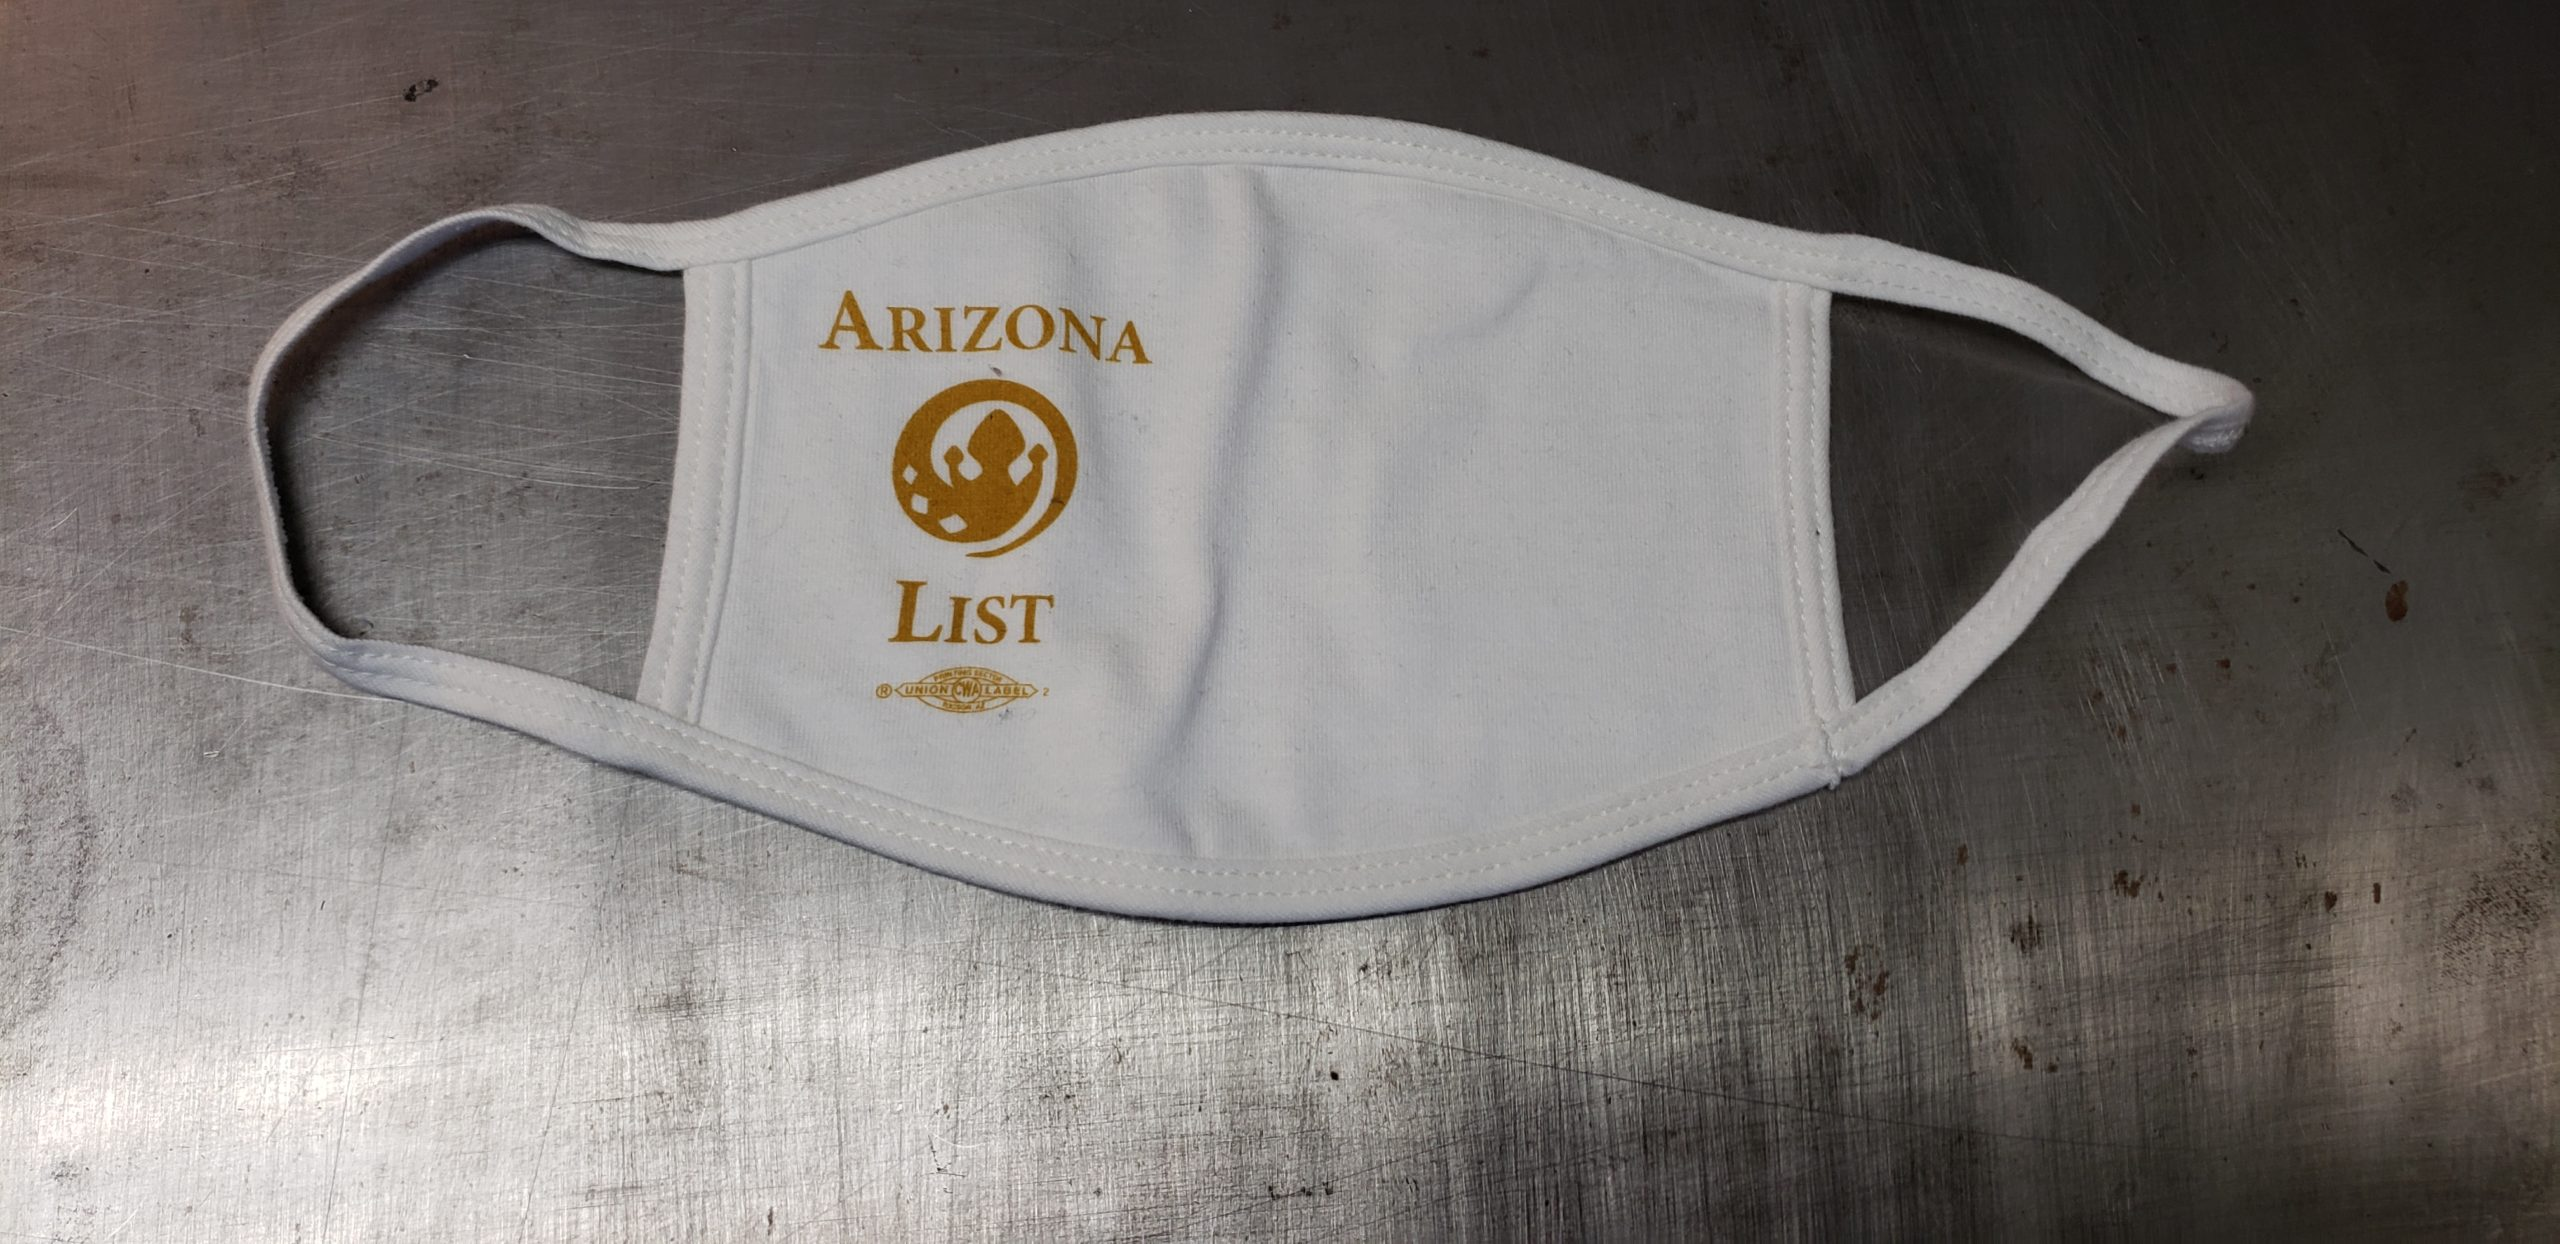 """White cotton face mask with union screen printed one color design reading, """"ARIZONA LIST"""" around a circular spiraling logo of a spade/crown design."""